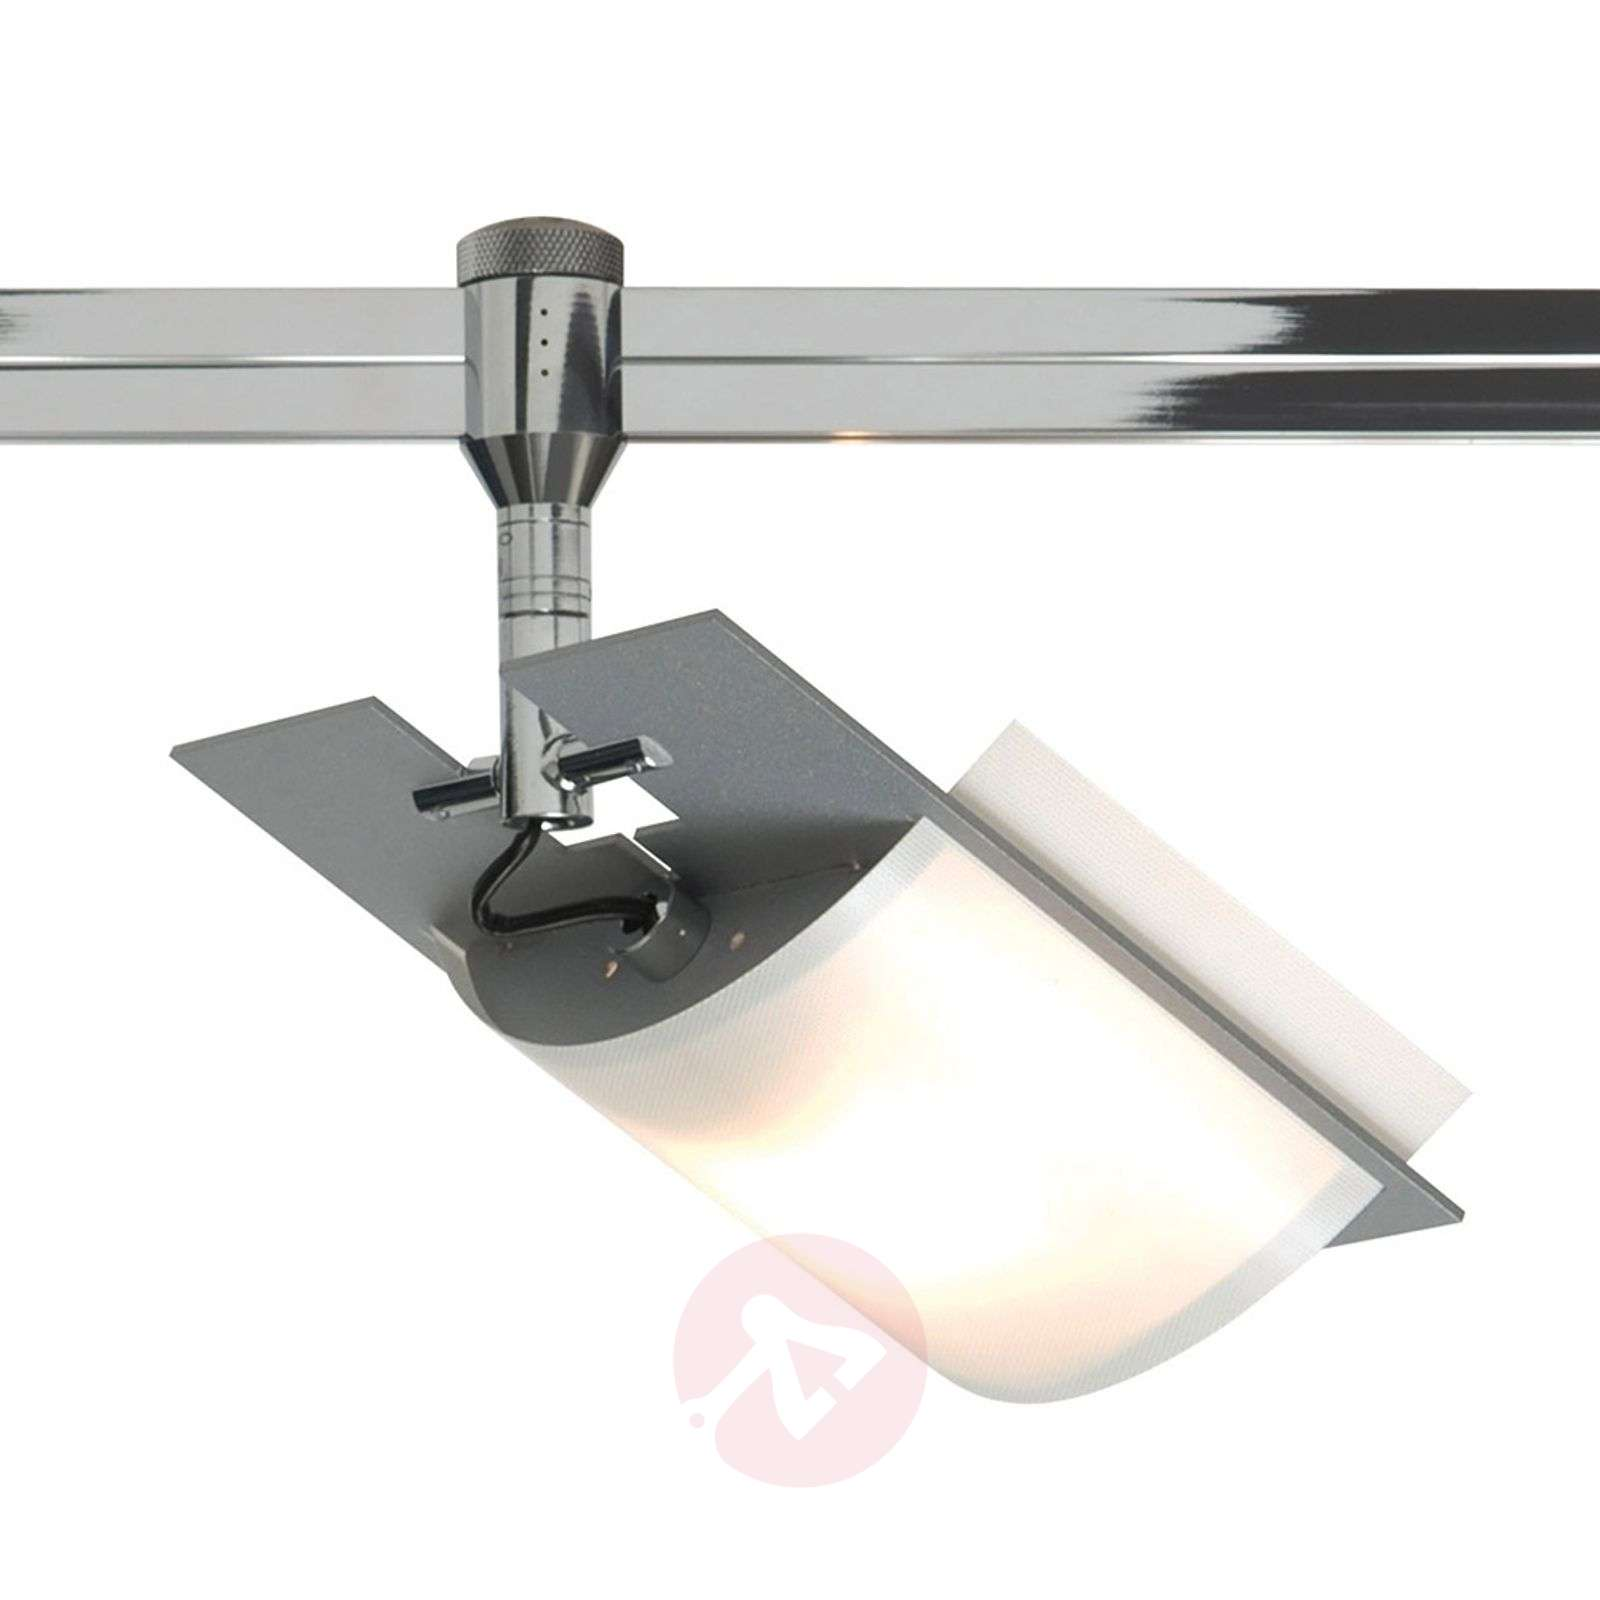 HIGHFLIGHT pour CHECKIN monophasé argenté brillant-7250332-01